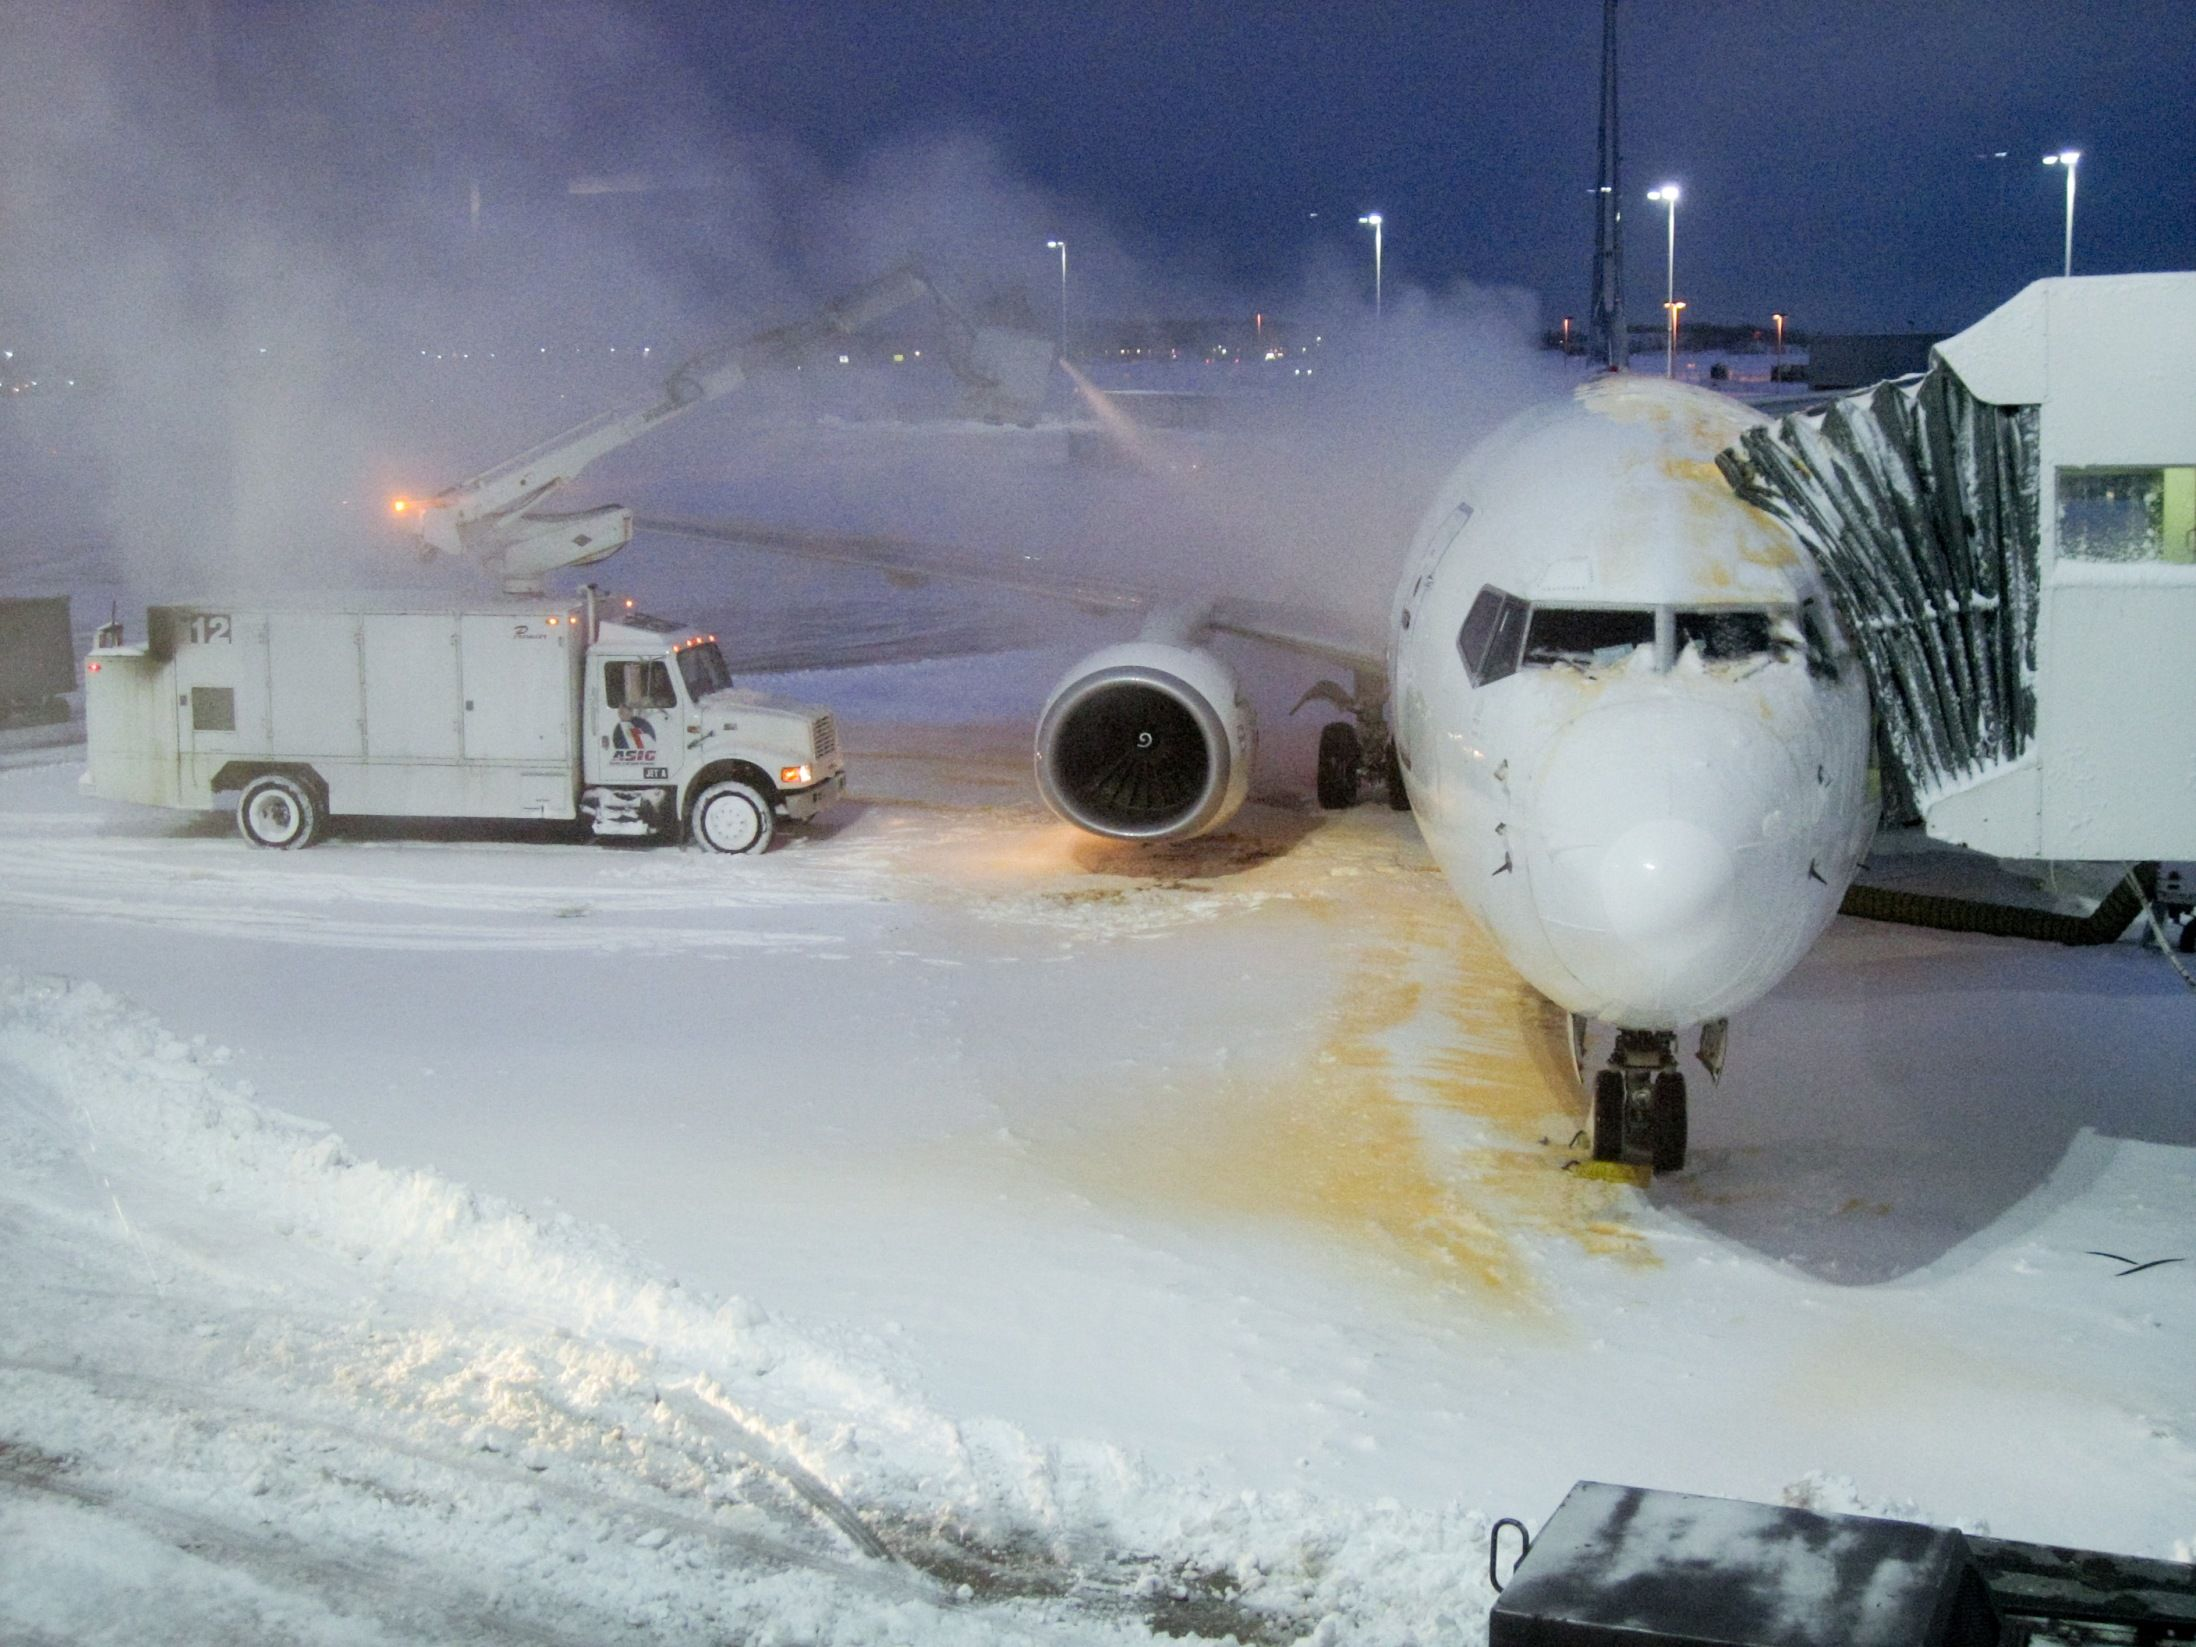 The costly flight delays of deicing